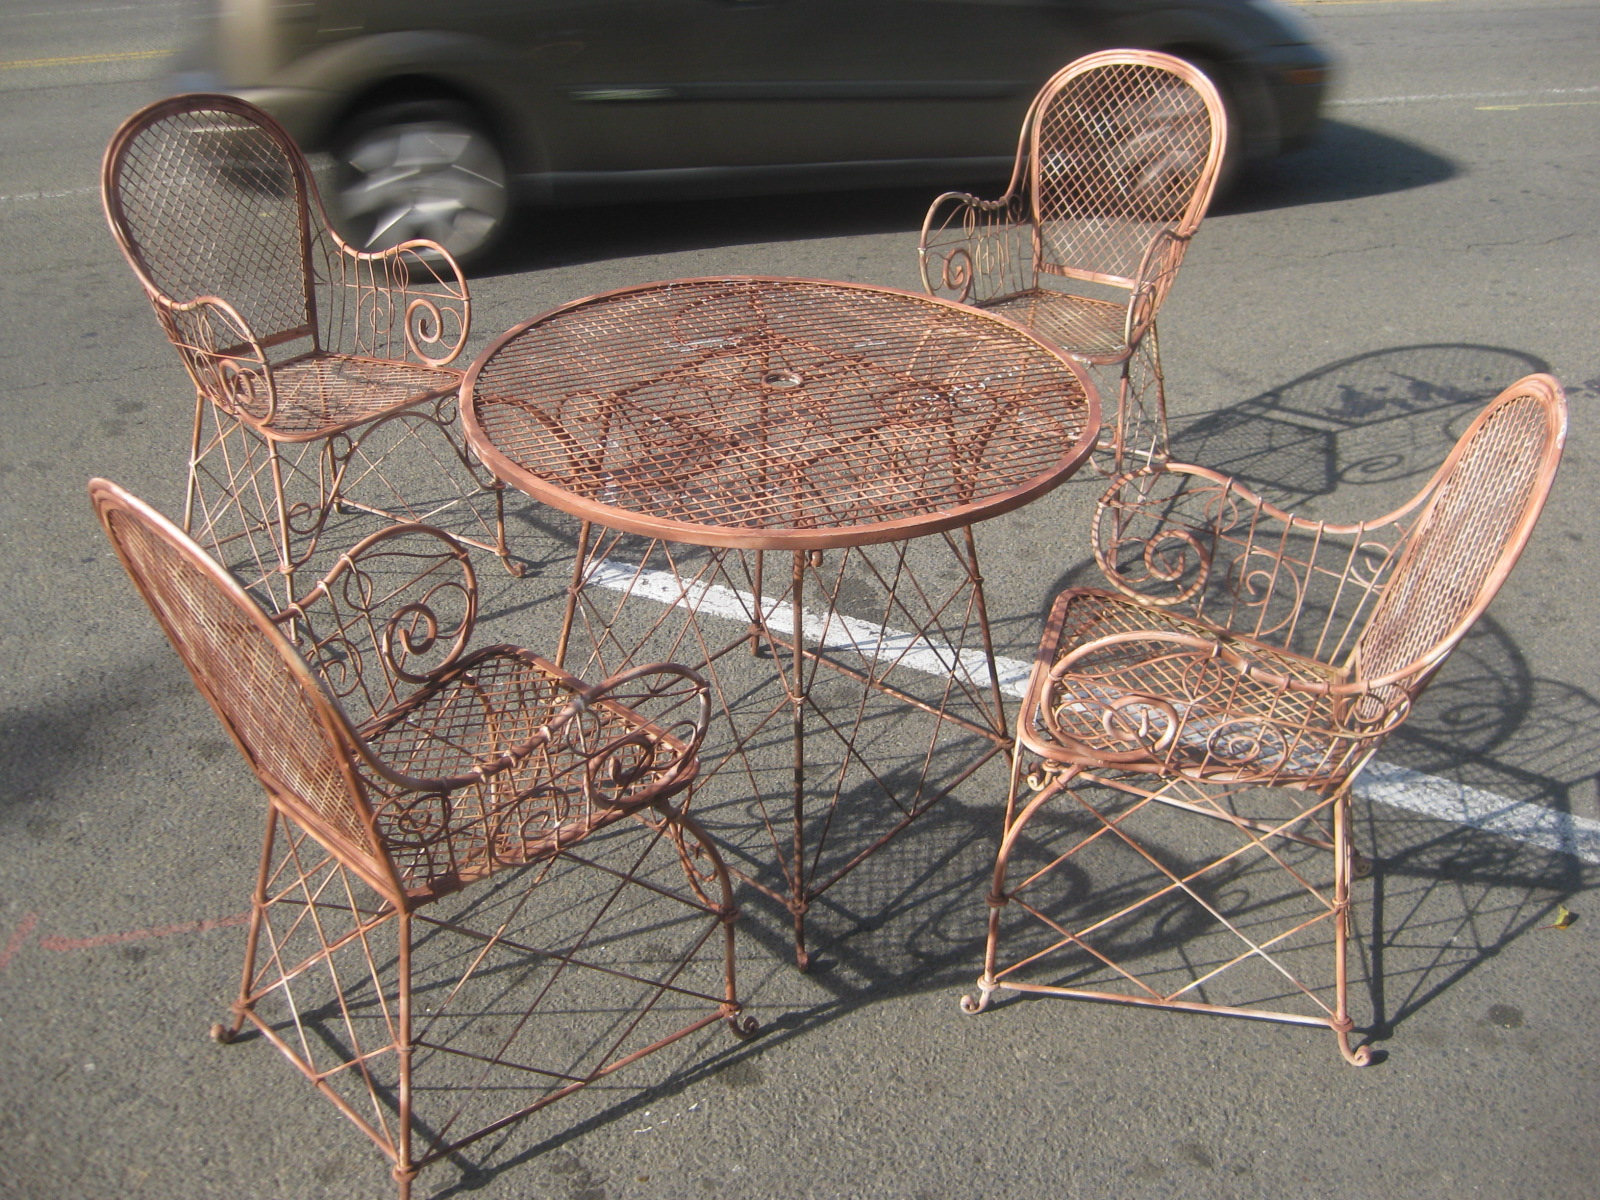 UHURU FURNITURE & COLLECTIBLES: SOLD - Vintage Patio Set ...